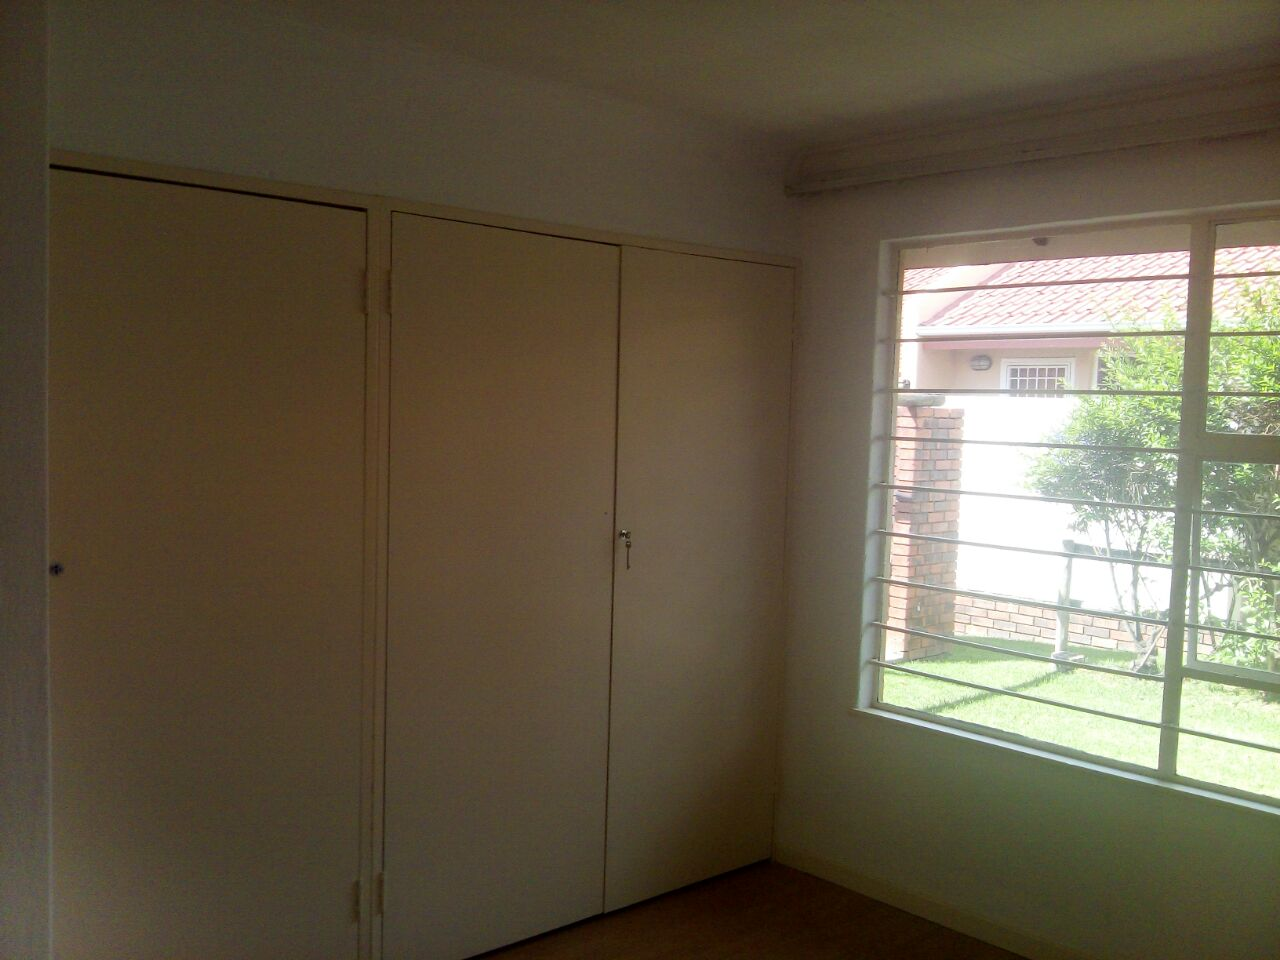 2 Bedroom Townhouse for sale in Sunninghill ENT0074719 : photo#11